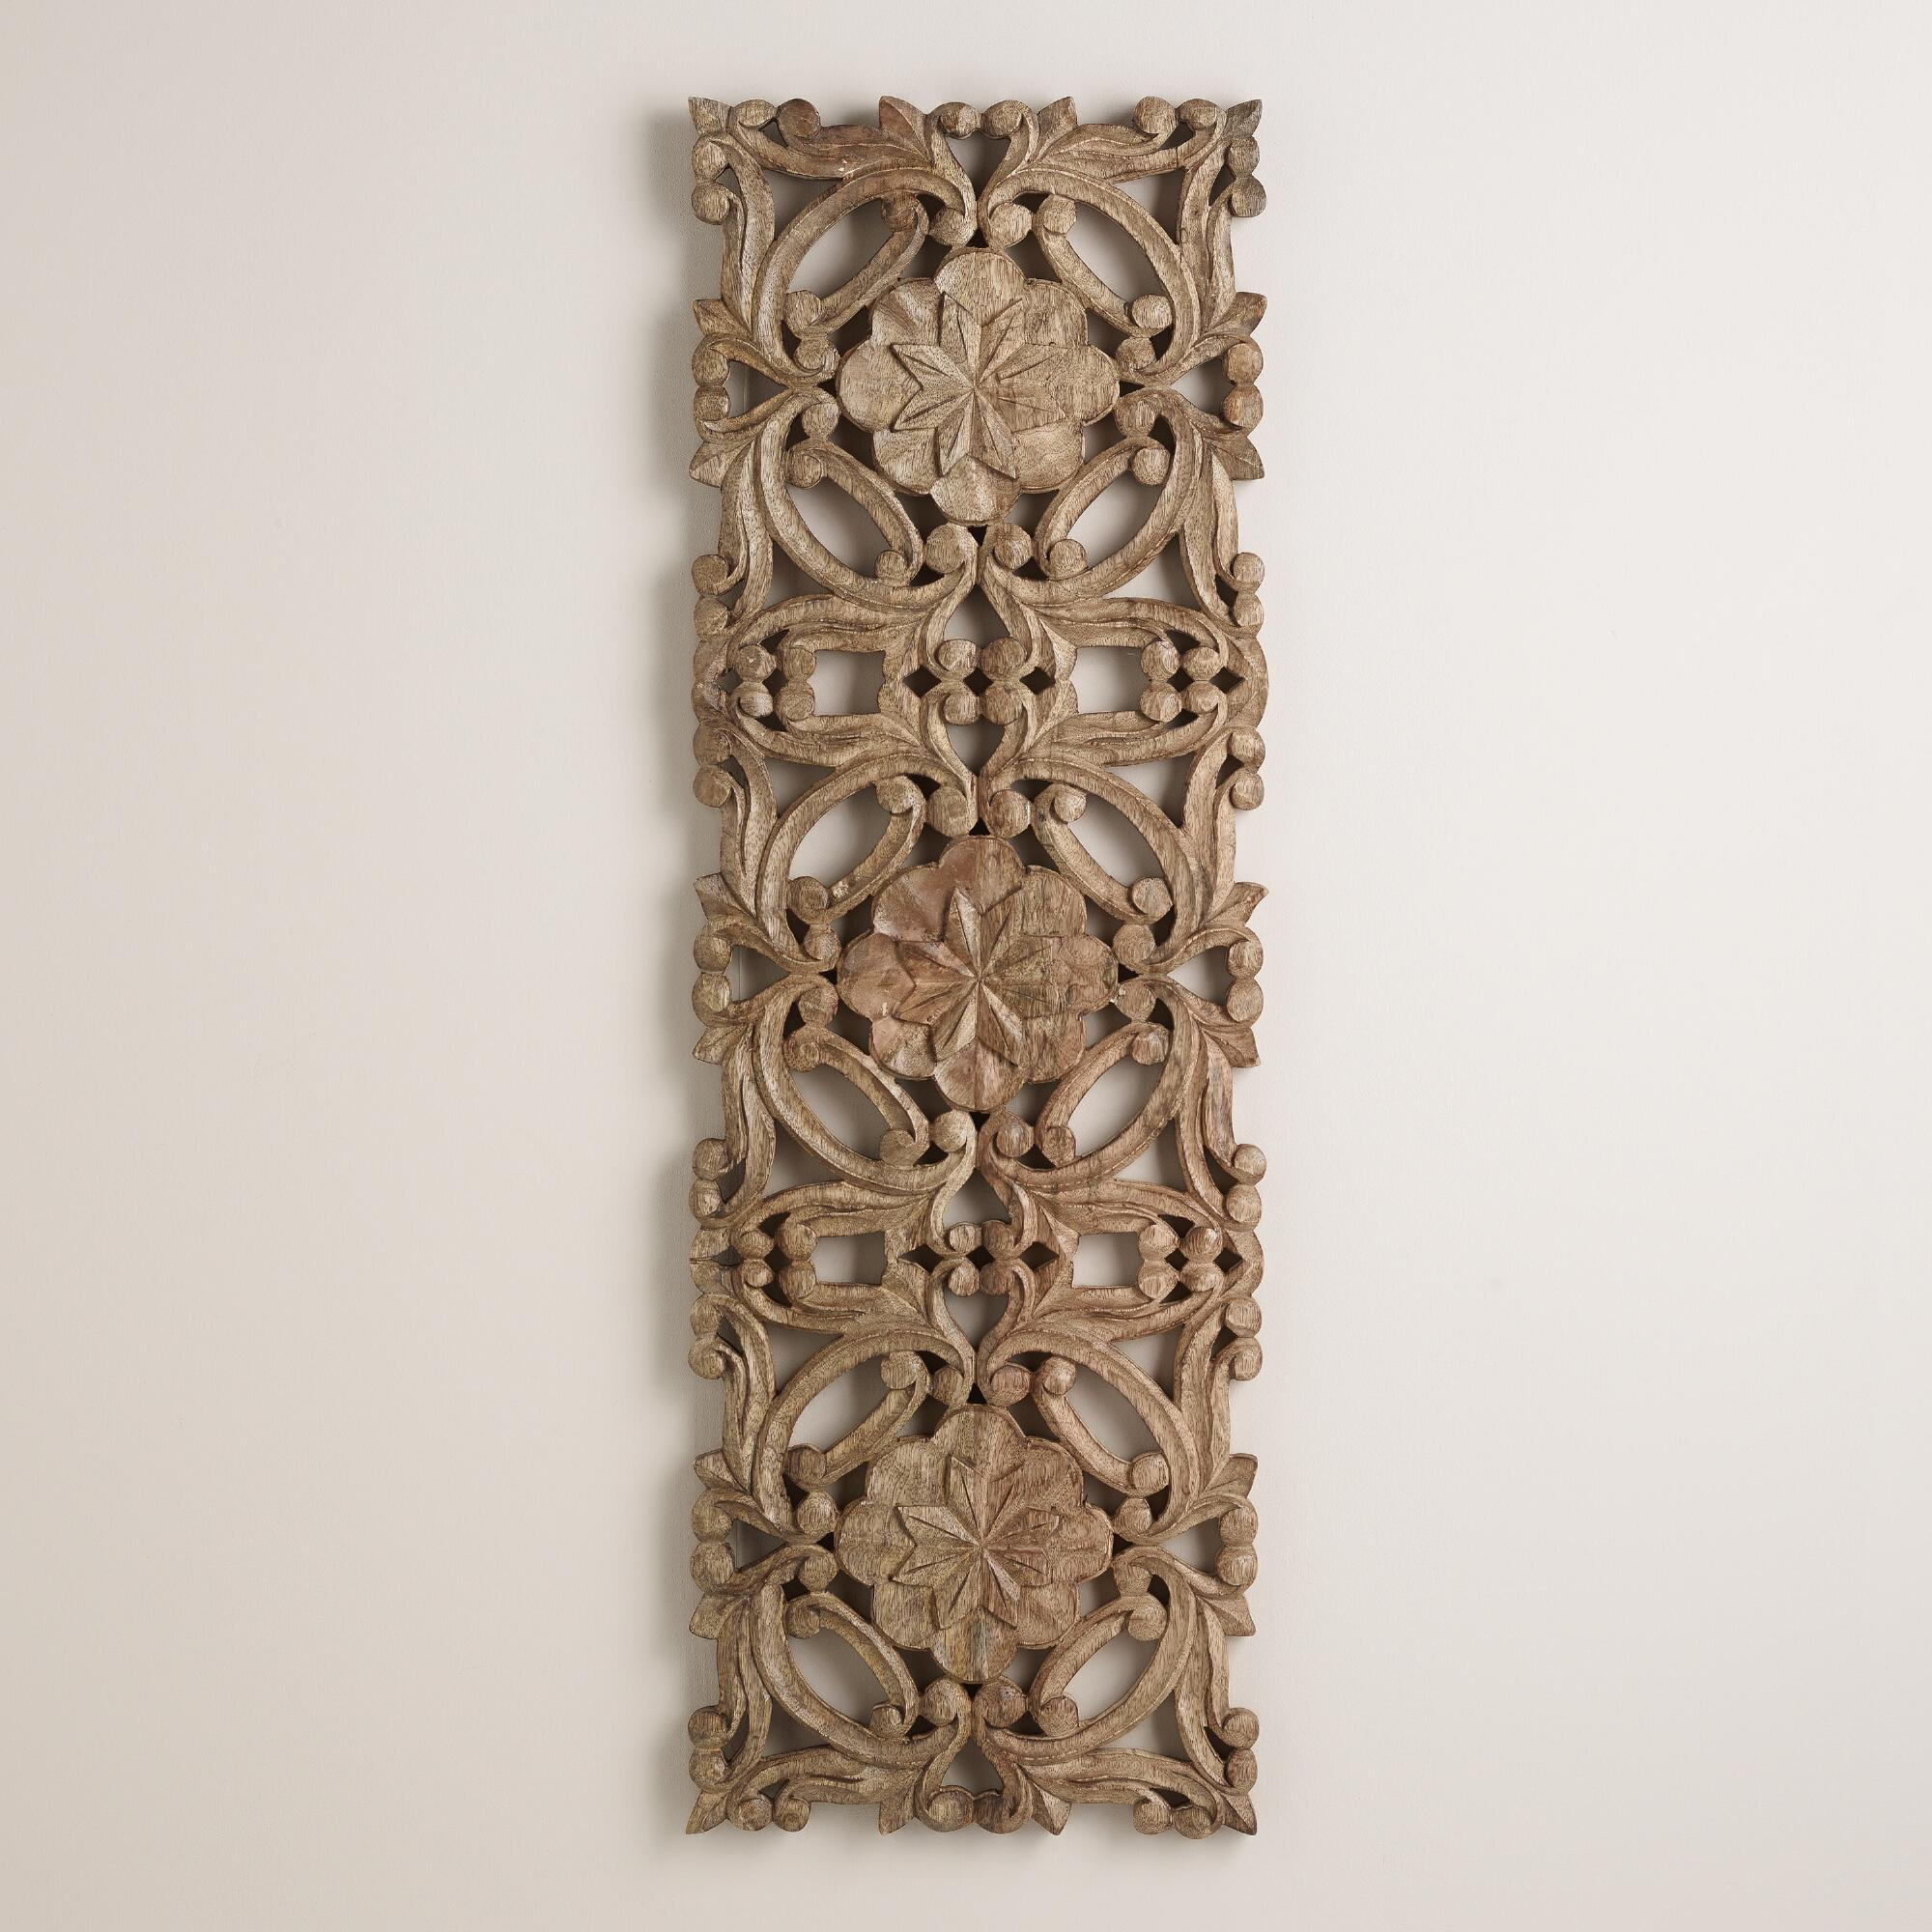 Smart saw wood carving wall decor